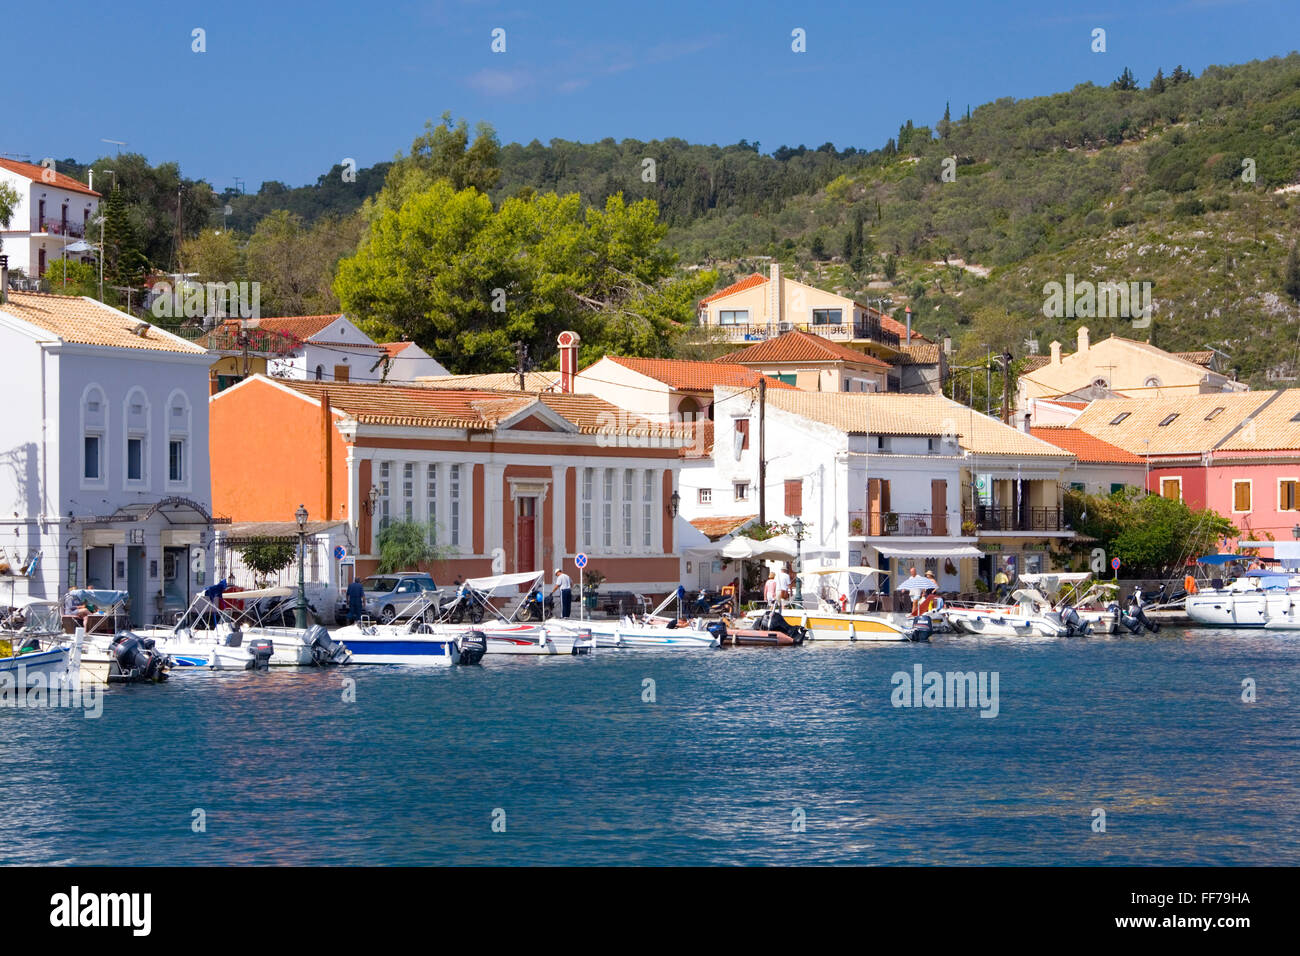 Gaios, Paxos, Ionian Islands, Greece. View across the harbour to colourful waterfront buildings. - Stock Image